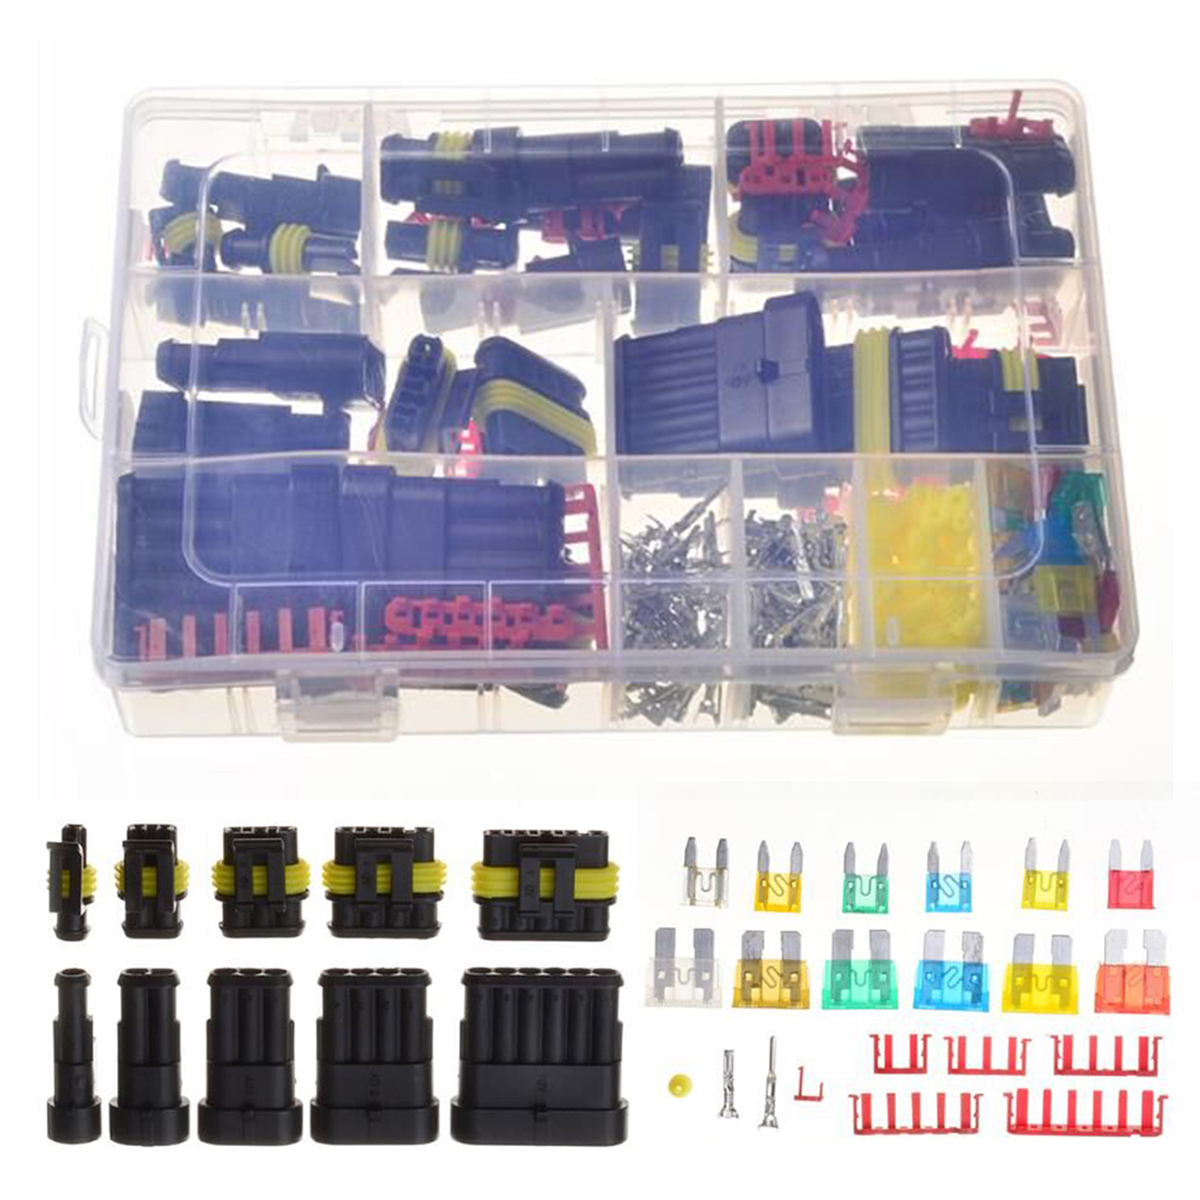 1/2/3/4/5/6 Pin Way Waterproof Car Electrical Connector Terminals + Automotive Standard Blade Fuse Fuses Set For Car Truck 30 sets superseal amp tyco 1 5 kit 1 2 3 4 5 6 pin female male waterproof electrical wire cable automotive connector car plug